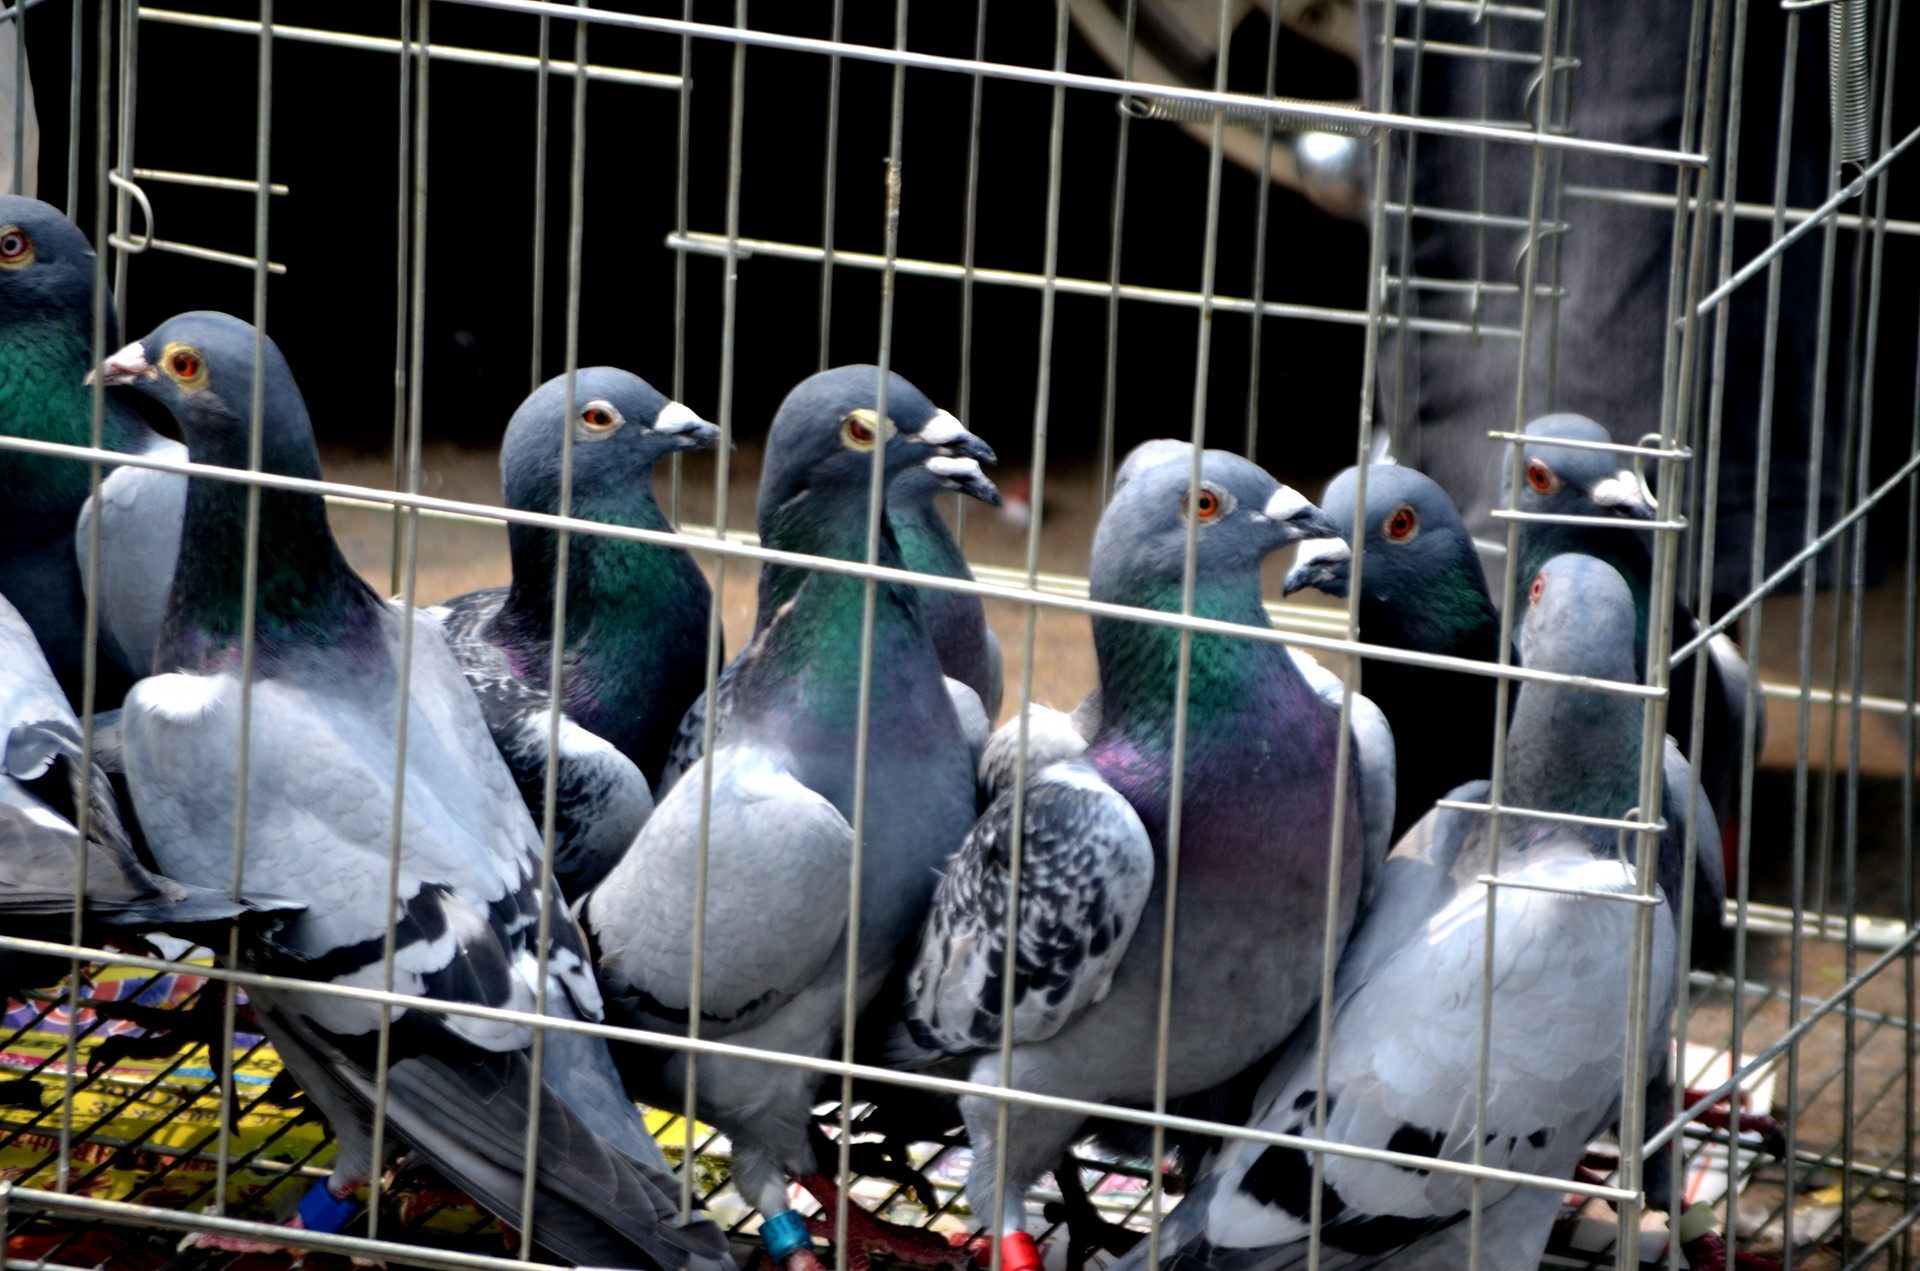 Animals,bird,pigeon,pigeons,homing - free image from needpix.com